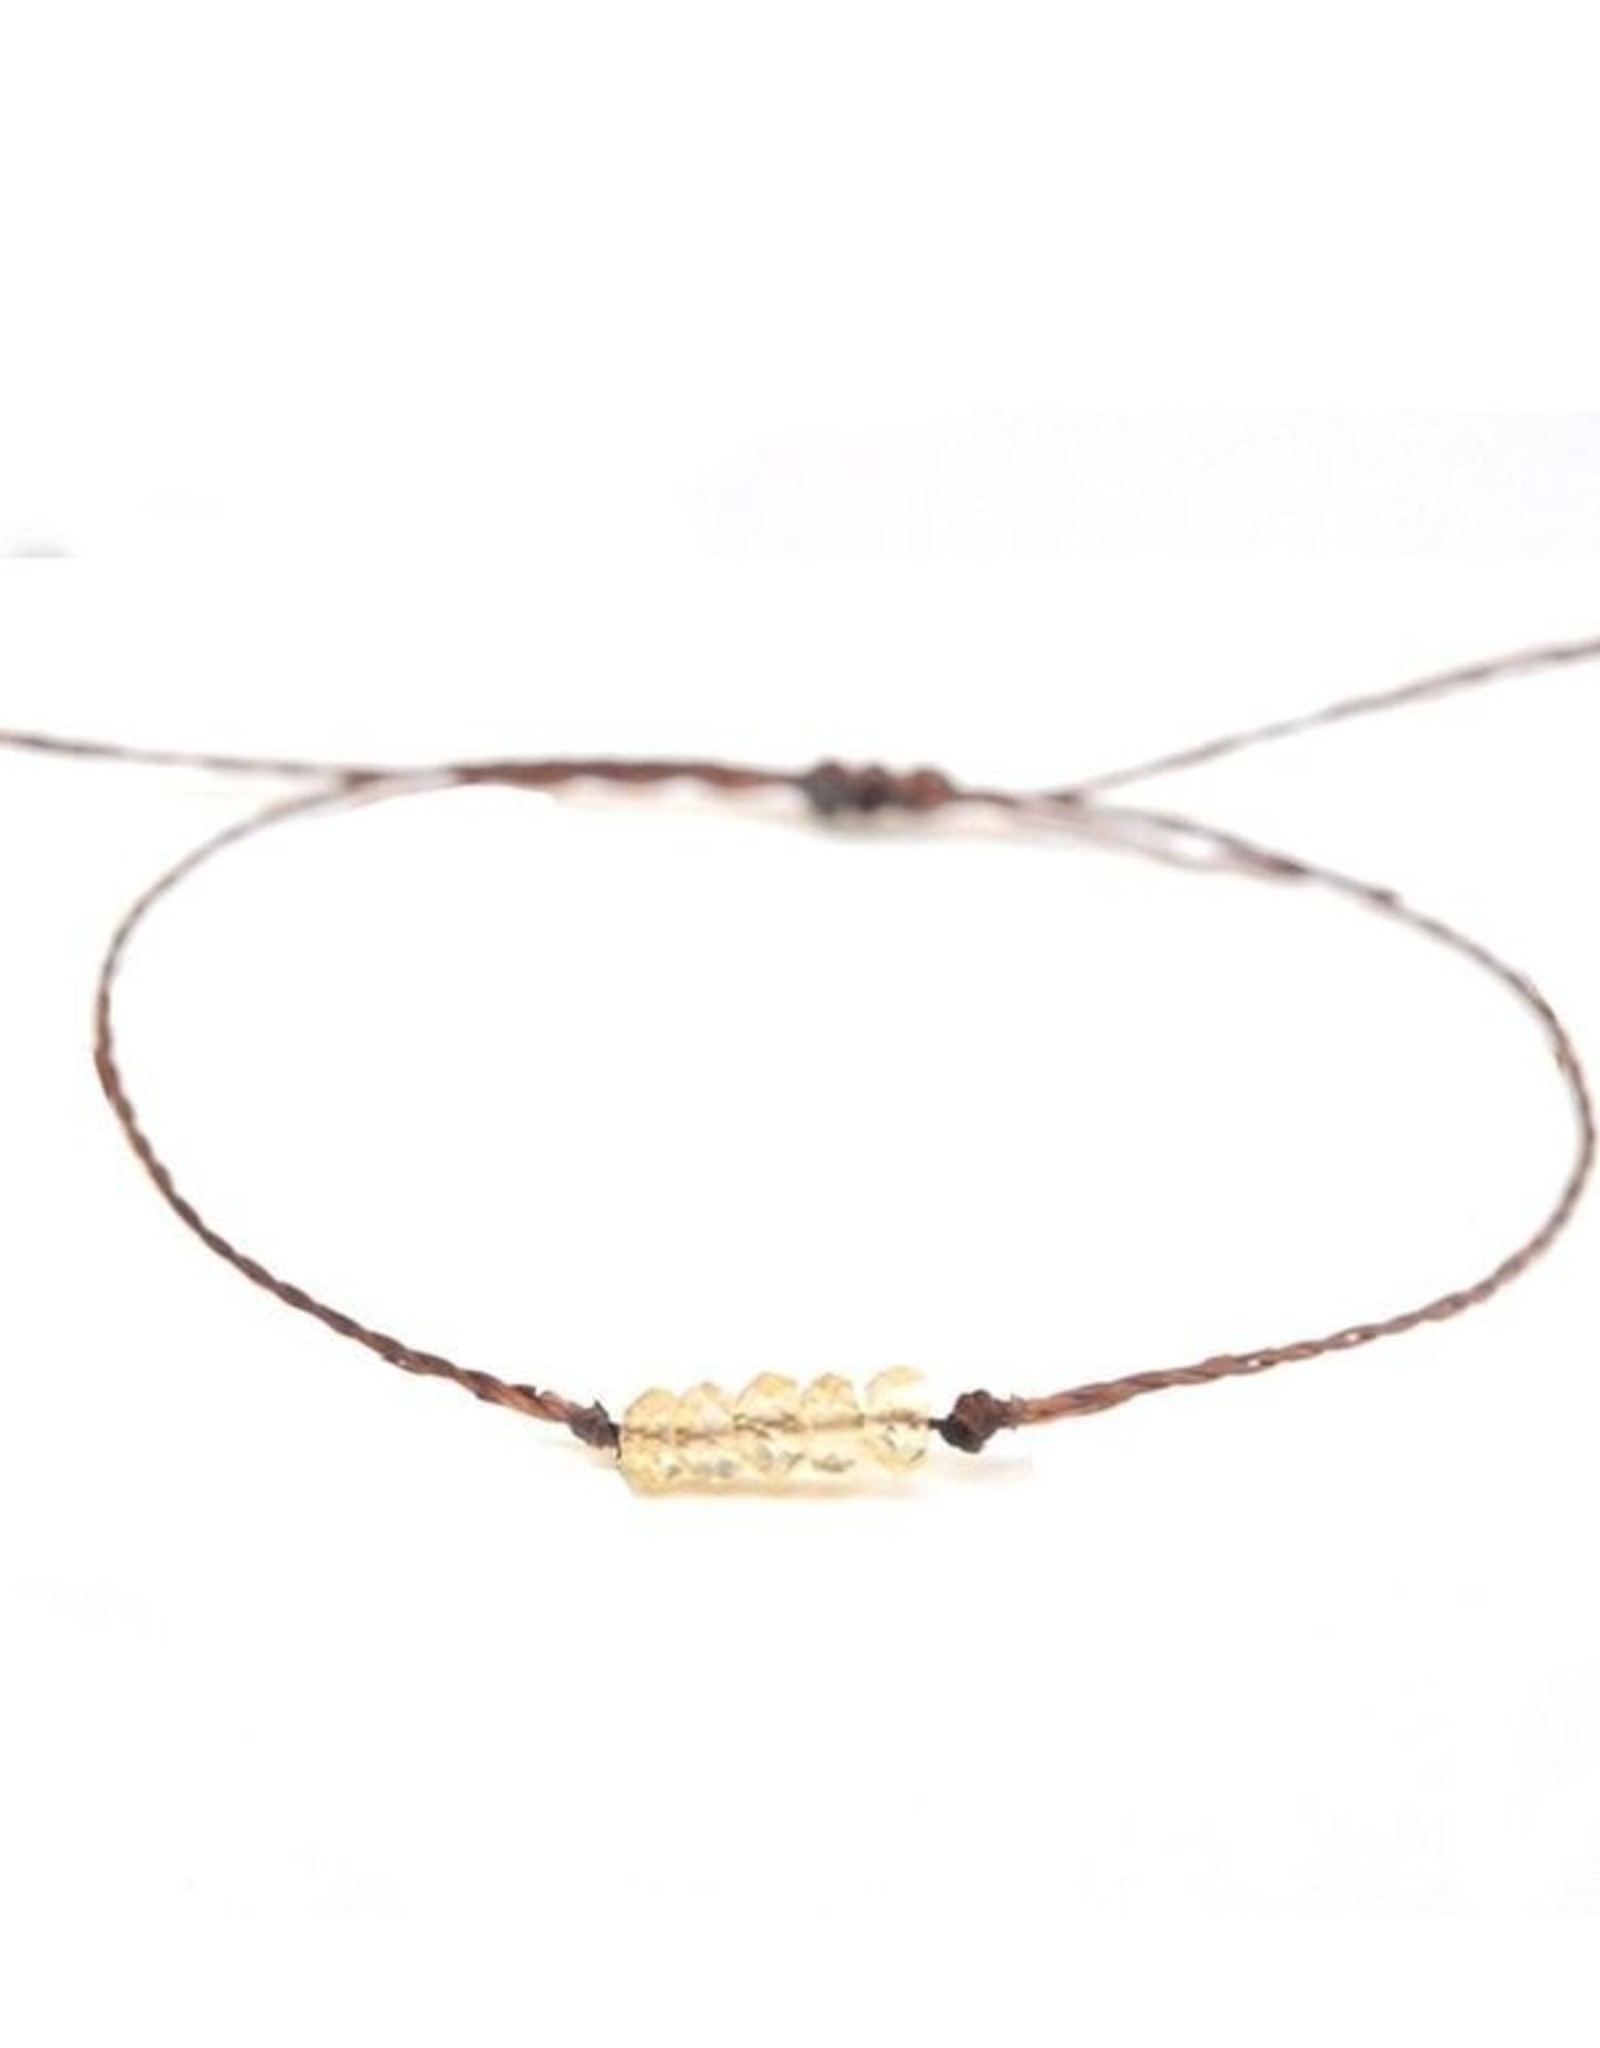 Waxed Thread Bracelet With Citrine Beads